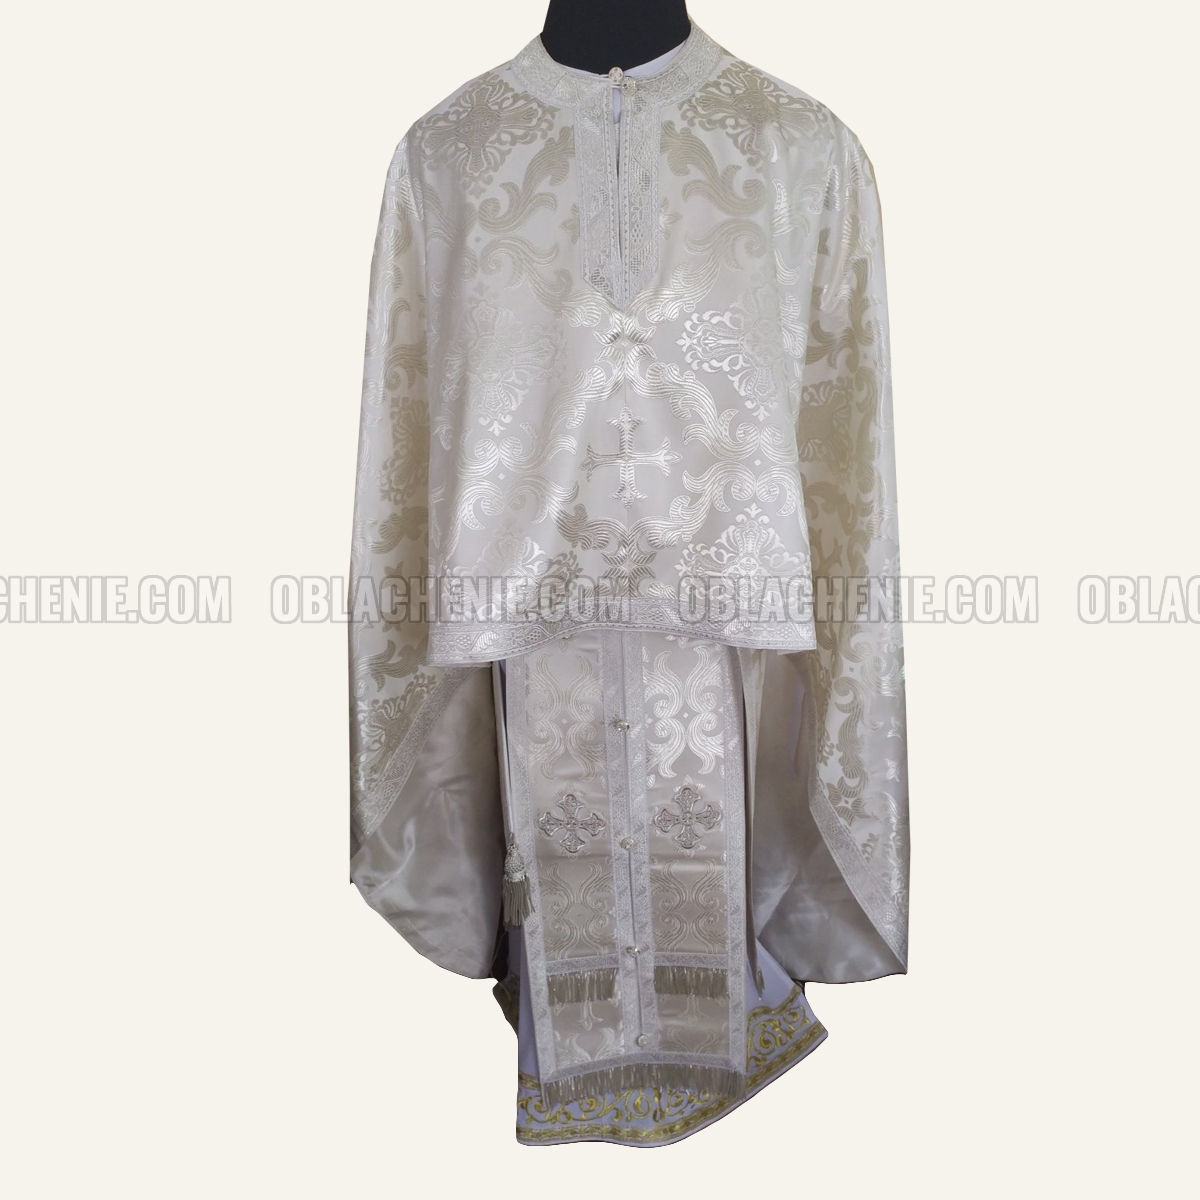 PRIEST'S VESTMENTS 10969